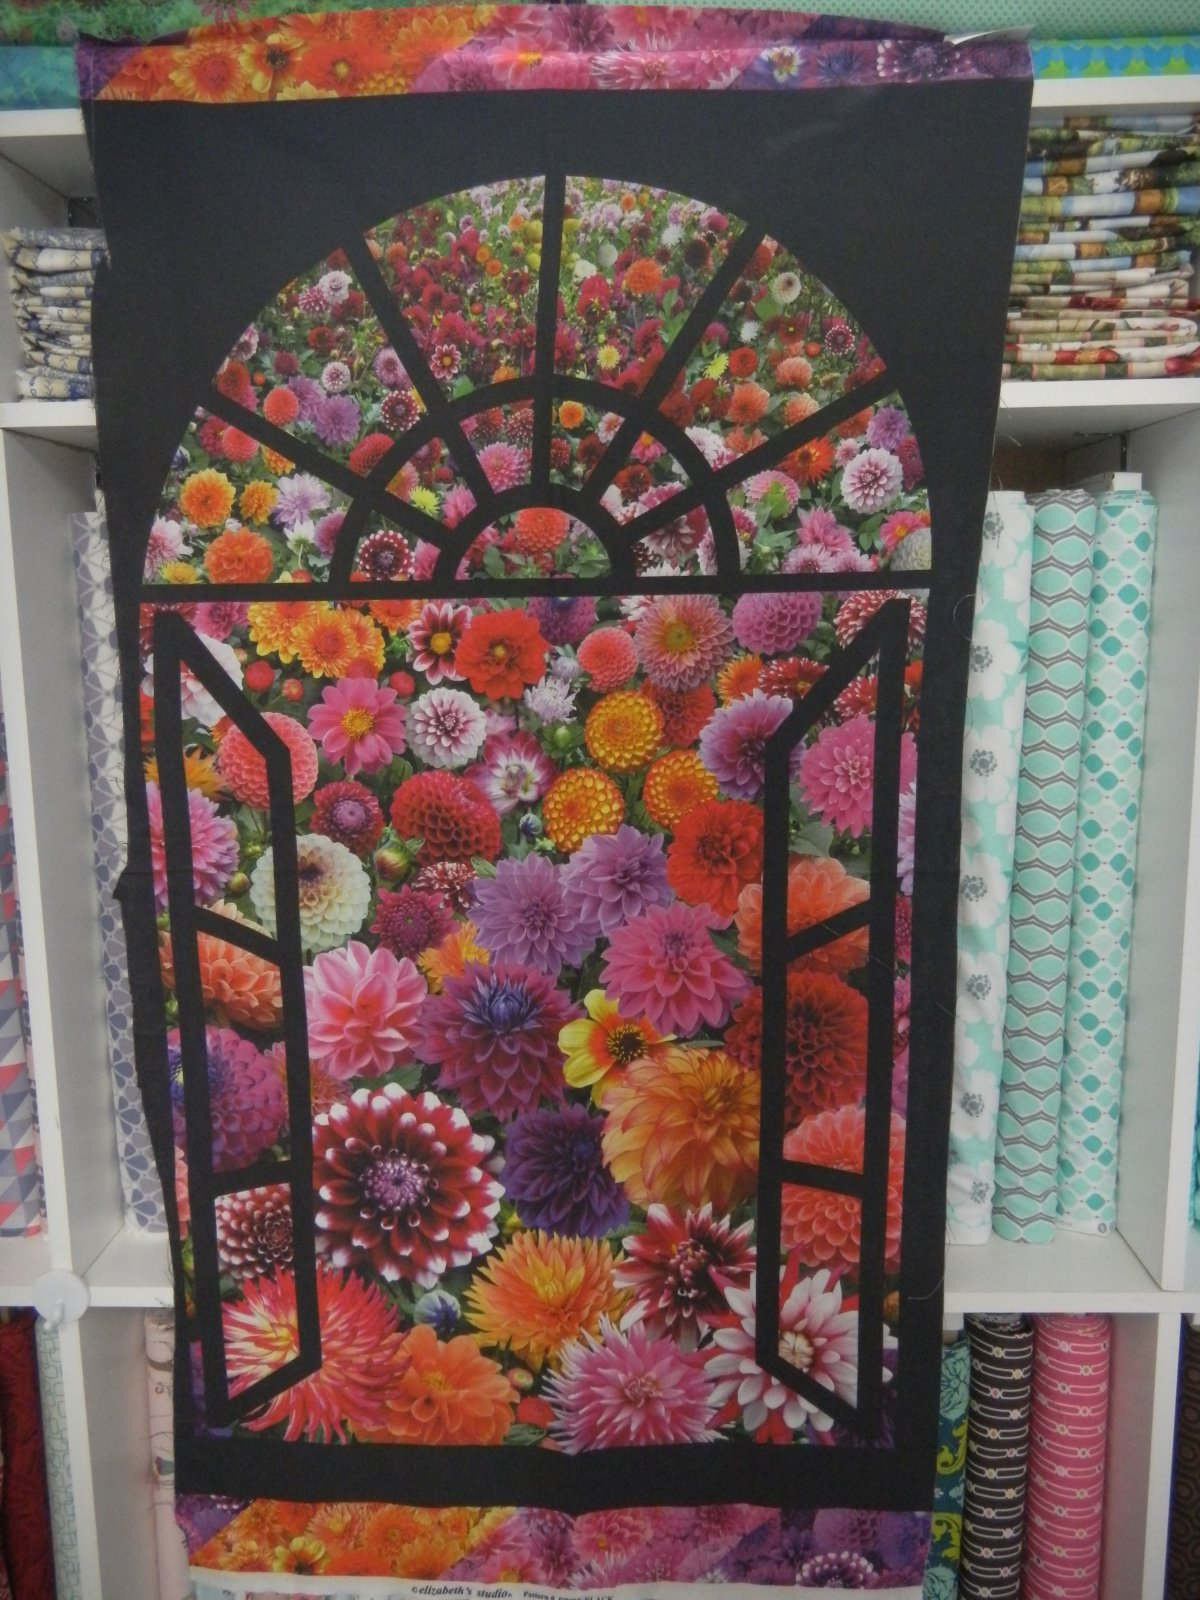 Panel#150 - Flowers out the window - Floral